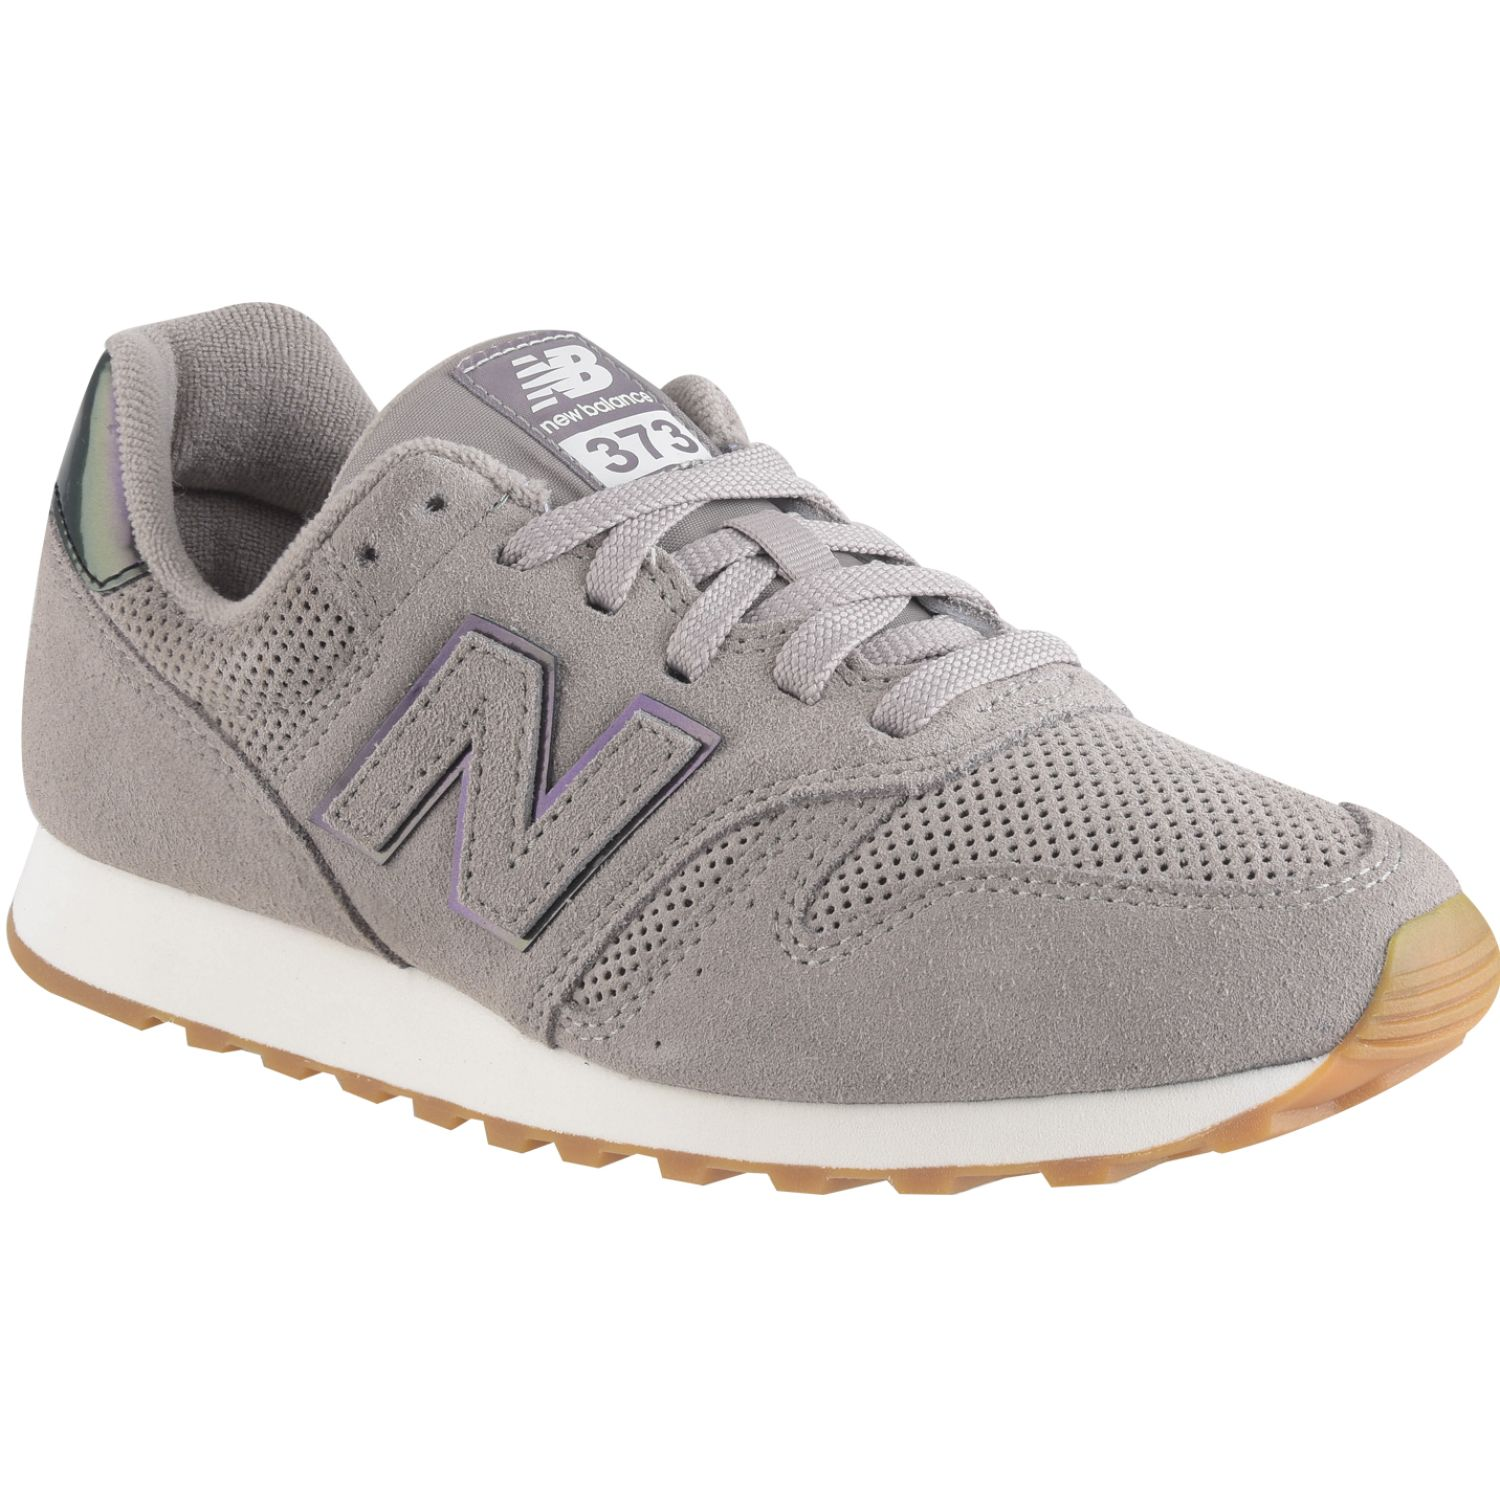 New Balance 373 Gris / morado Walking